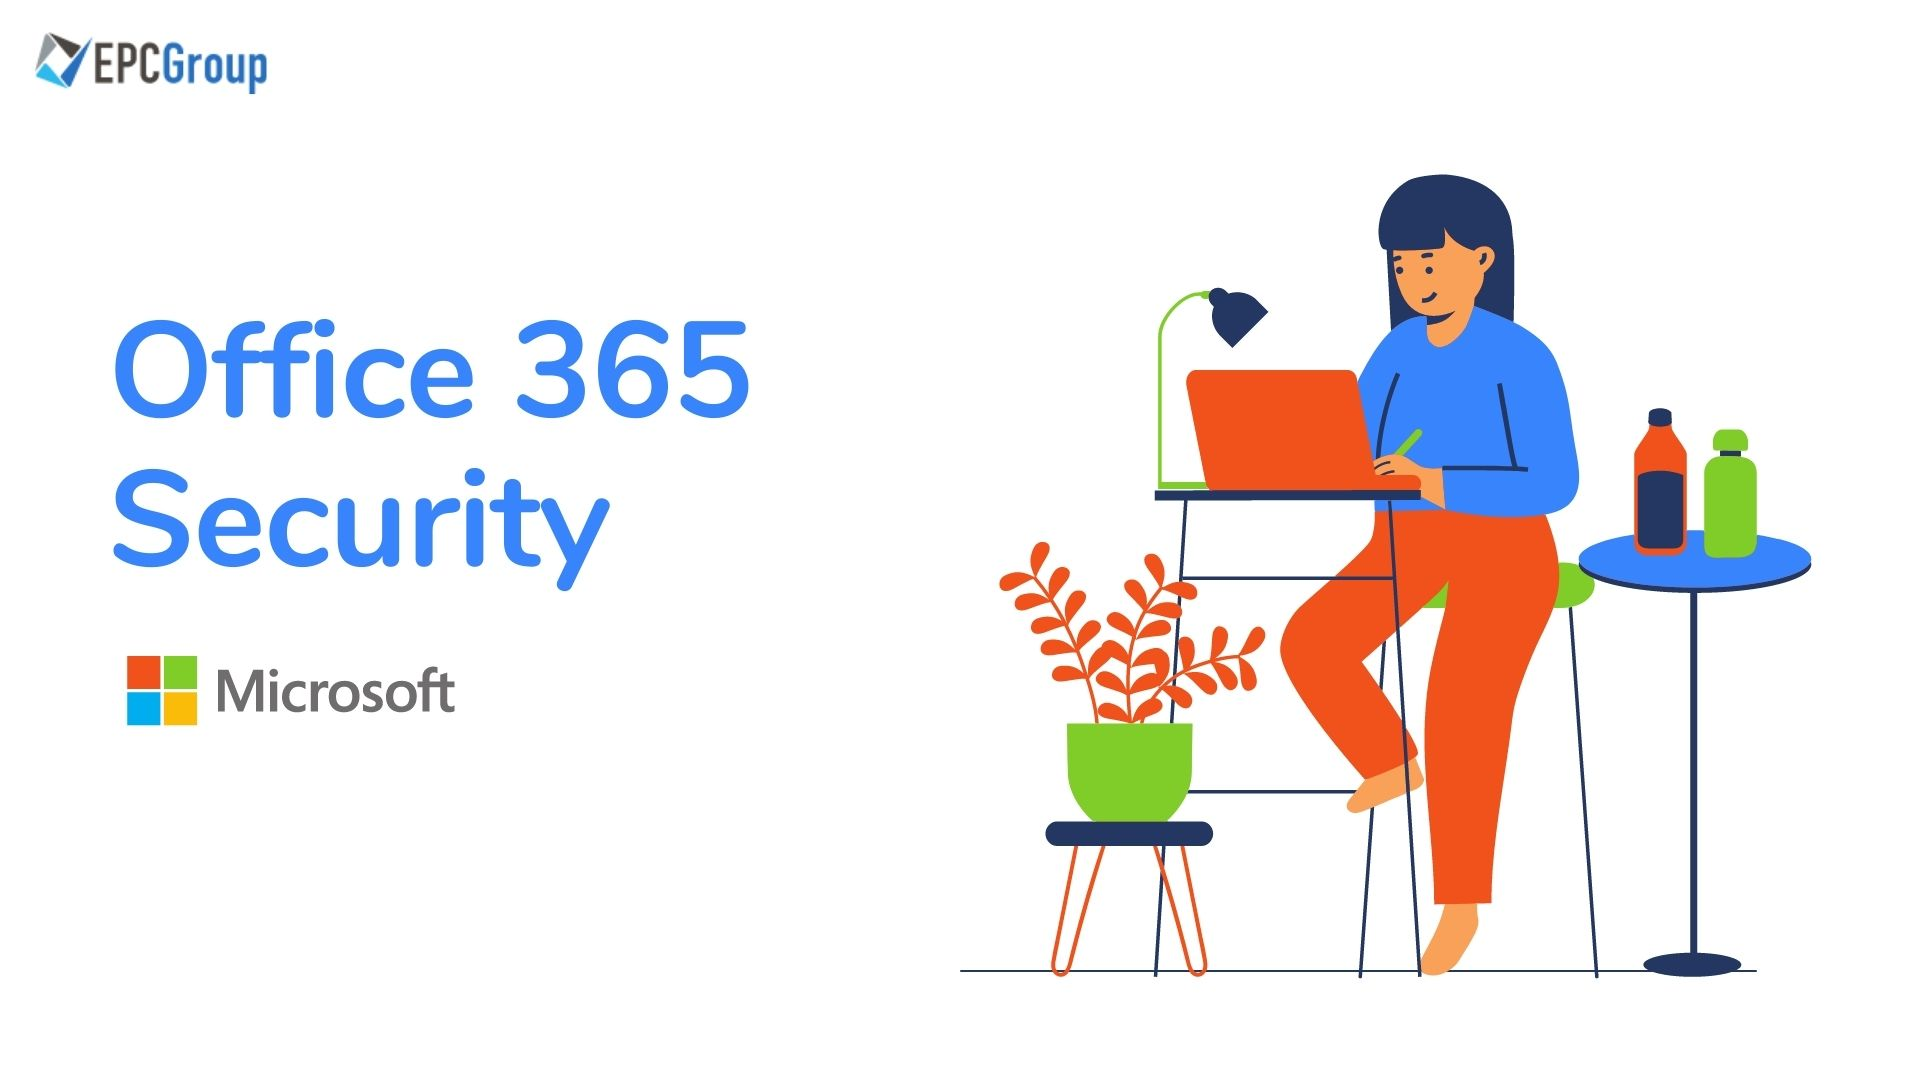 Guide For Office 365 Security: Securing Office 365 Cloud - thumb image